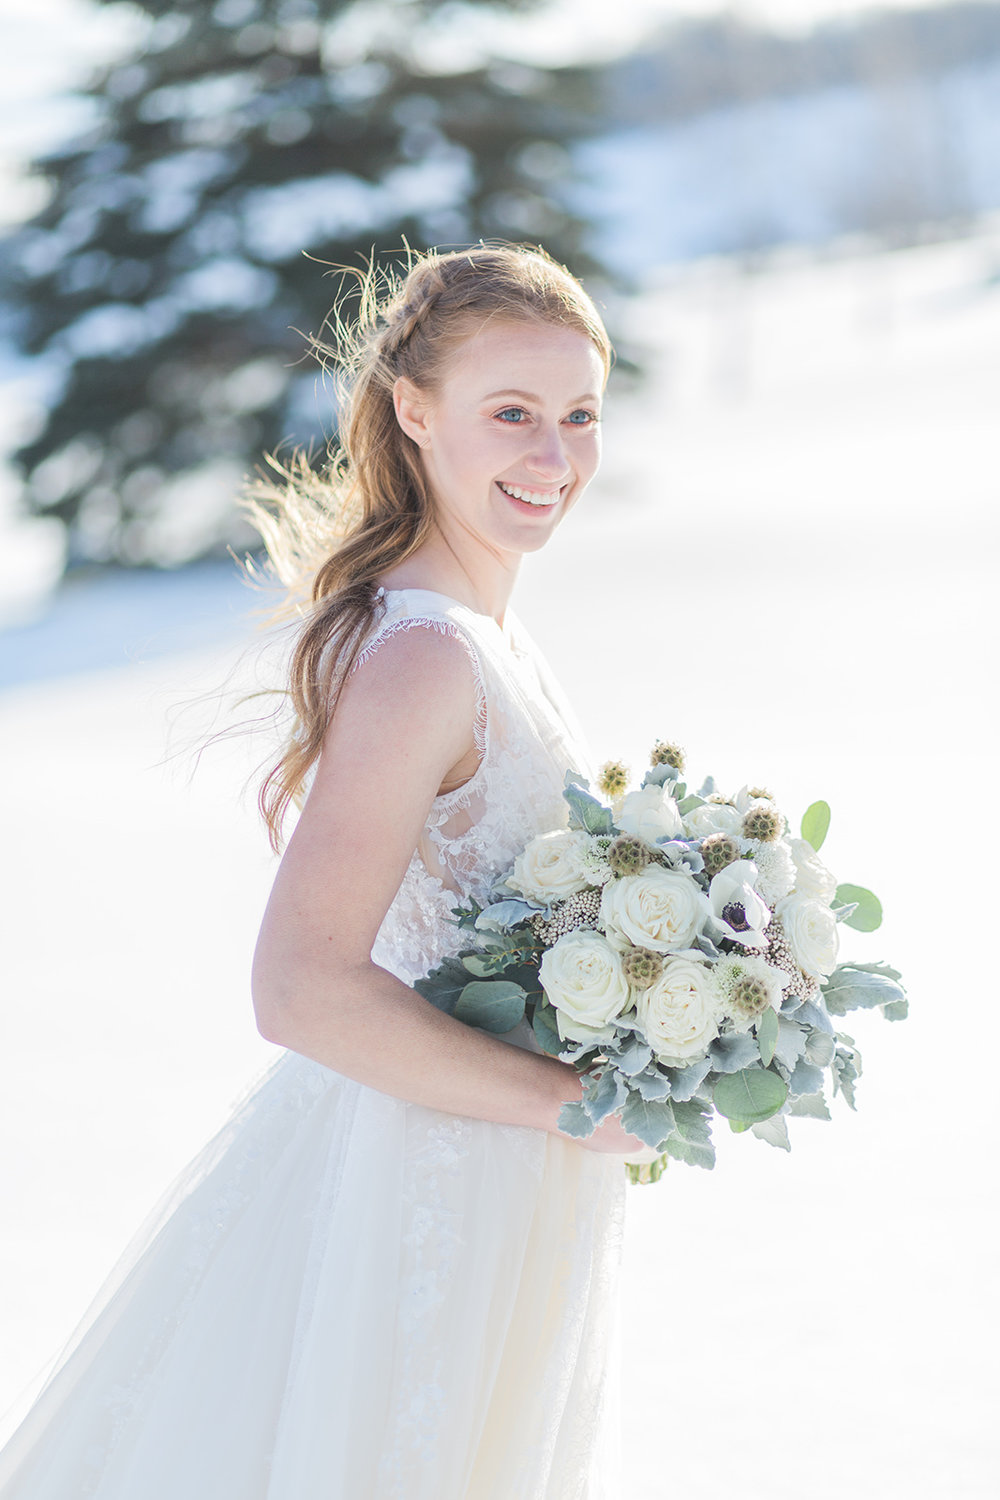 snowy winter wedding outdoor wedding photography